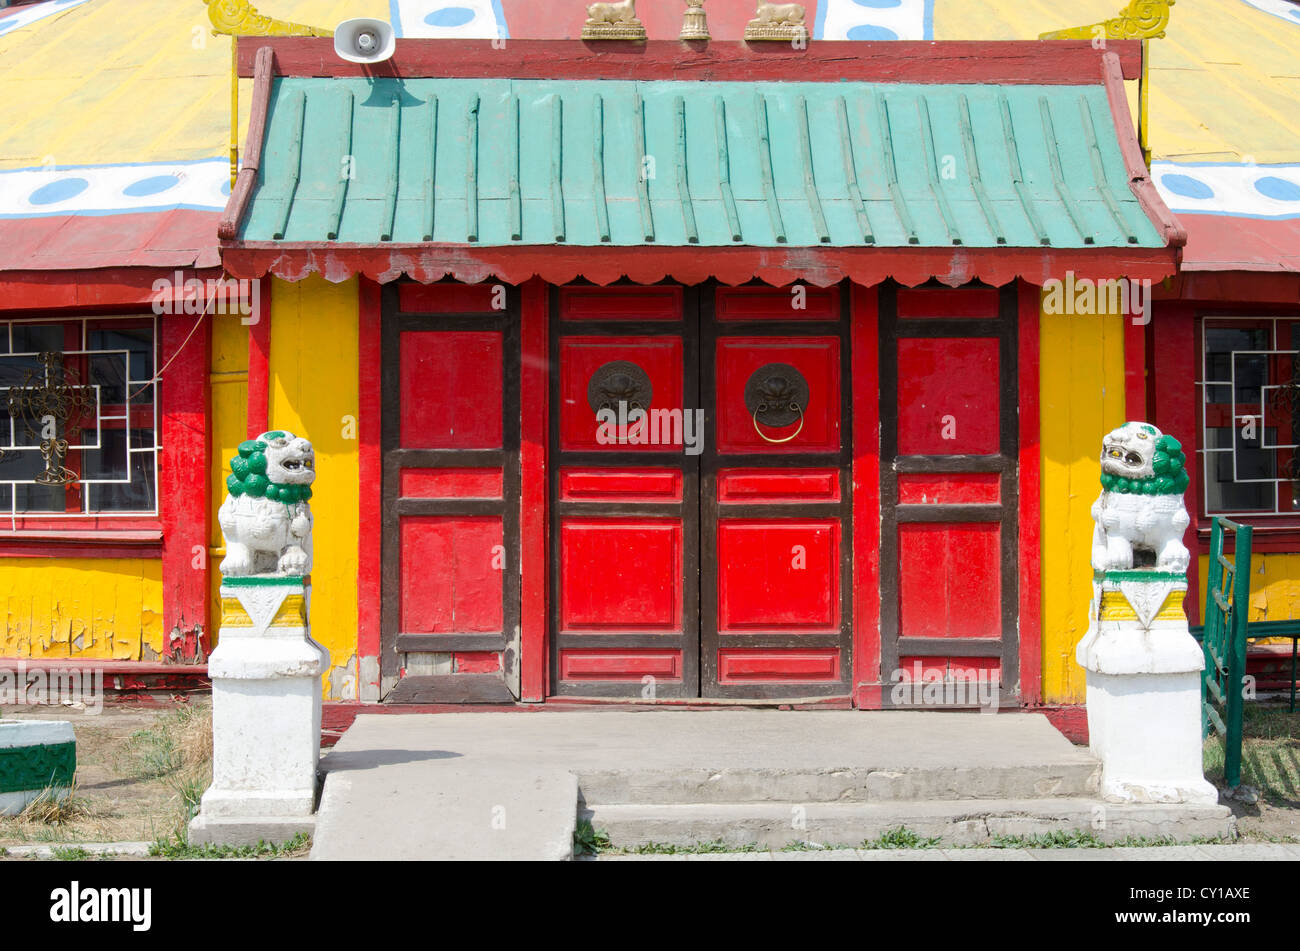 Red doors at Ger-shaped temple of Dashchoiling Monastery Ulaan Bataar, Mongolia - Stock Image